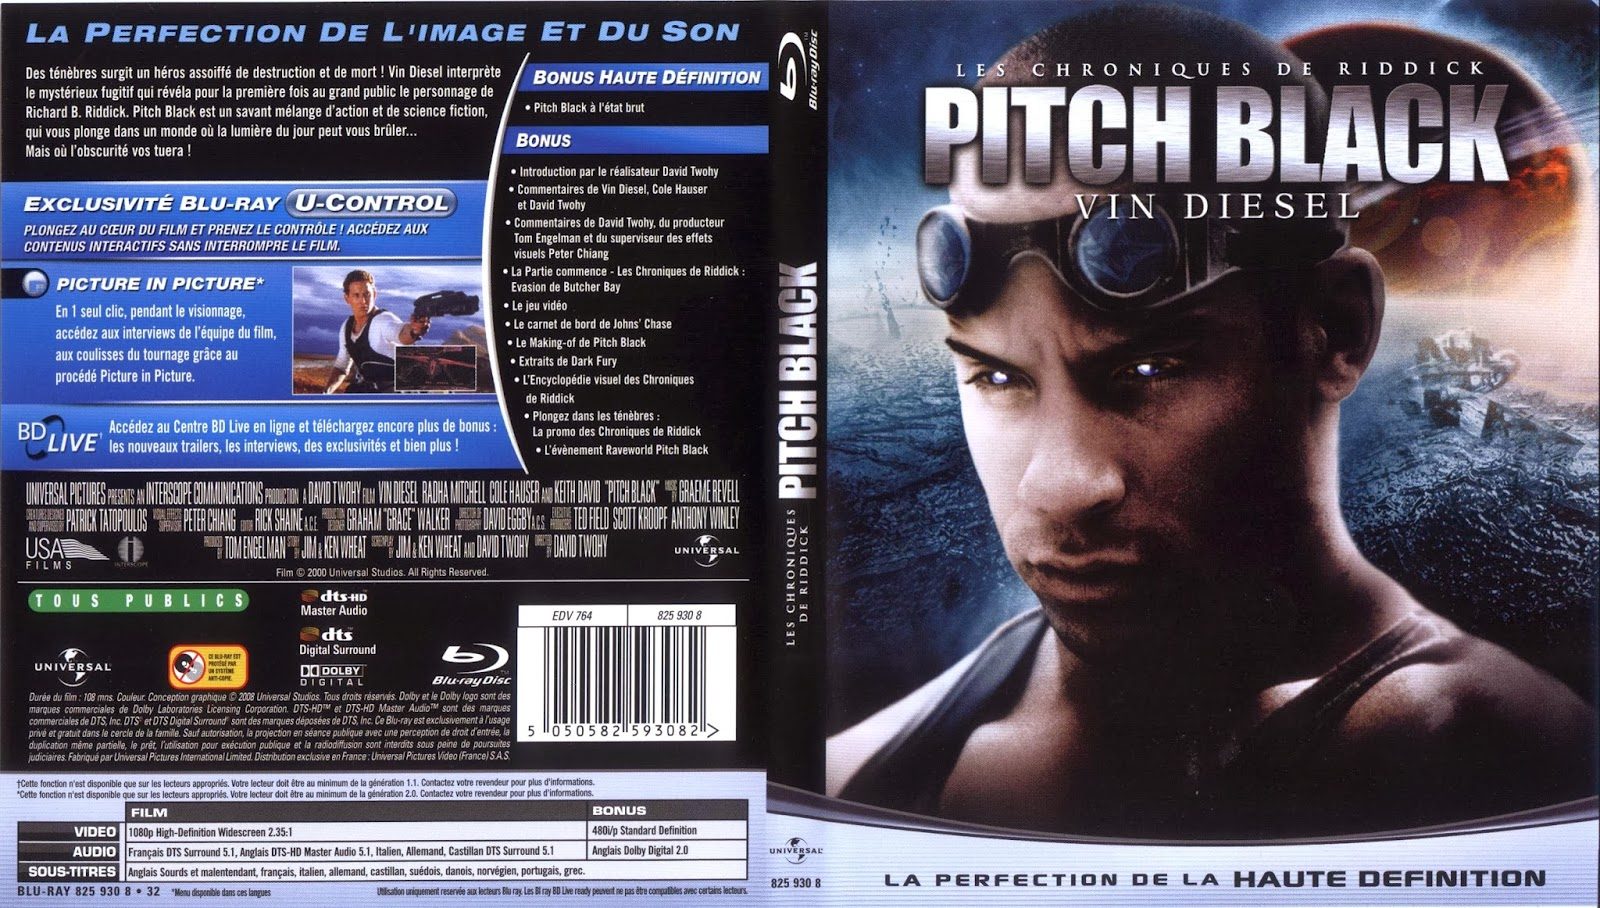 Pitch Black (Version Extendida) DVD